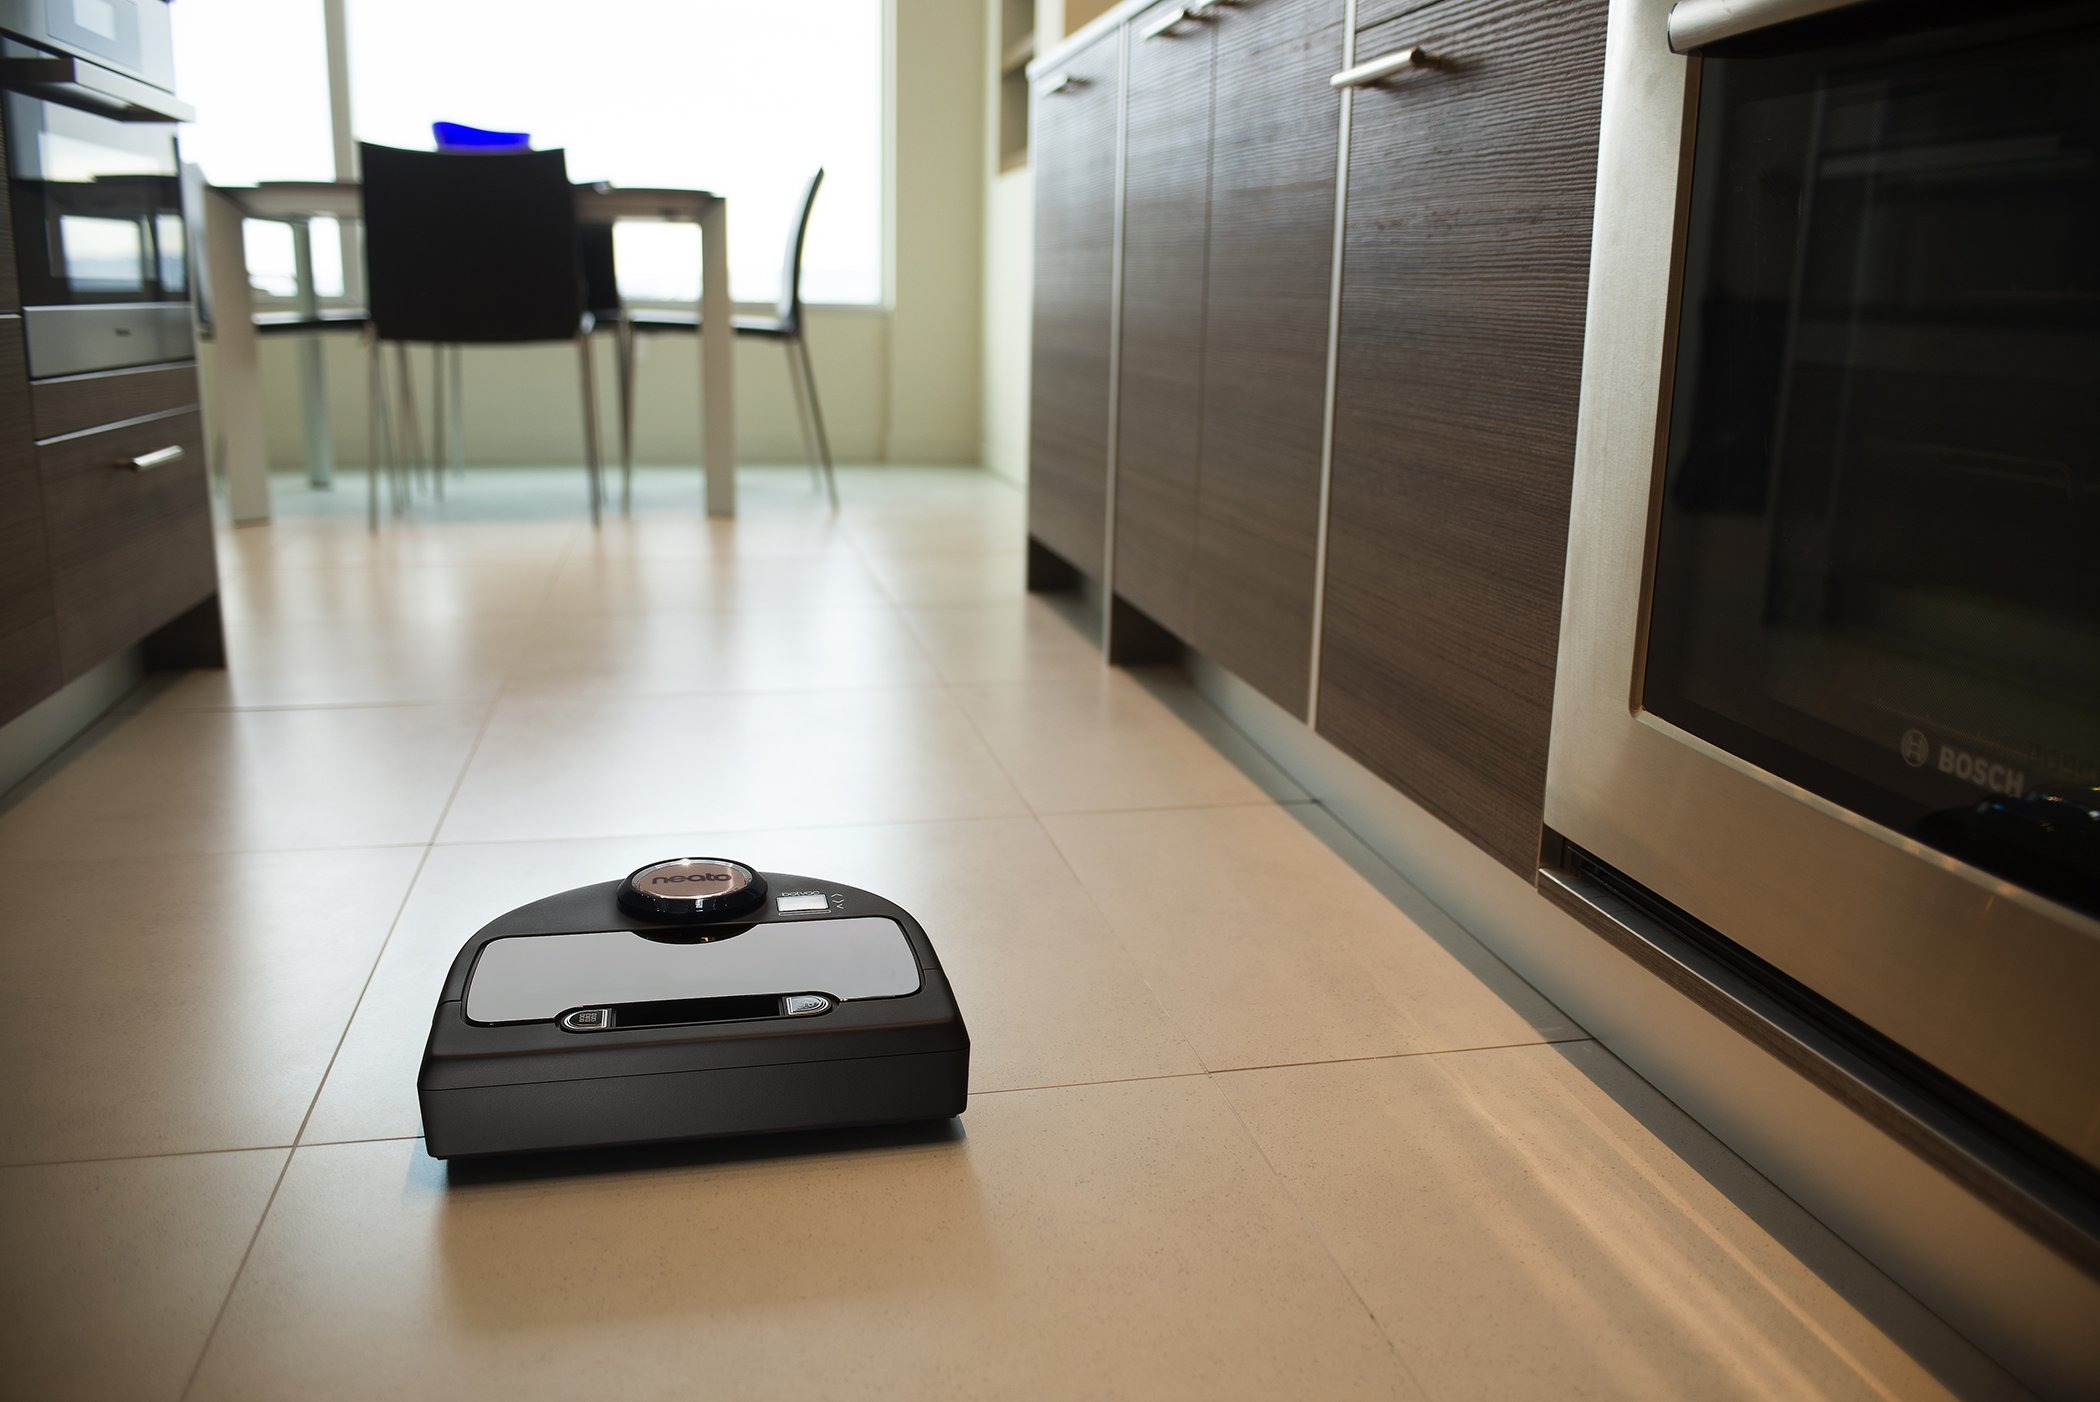 Neato Botvac Connected Wi-Fi Enabled Robot Vacuum, Works with Amazon Alexa by Neato Robotics (Image #7)